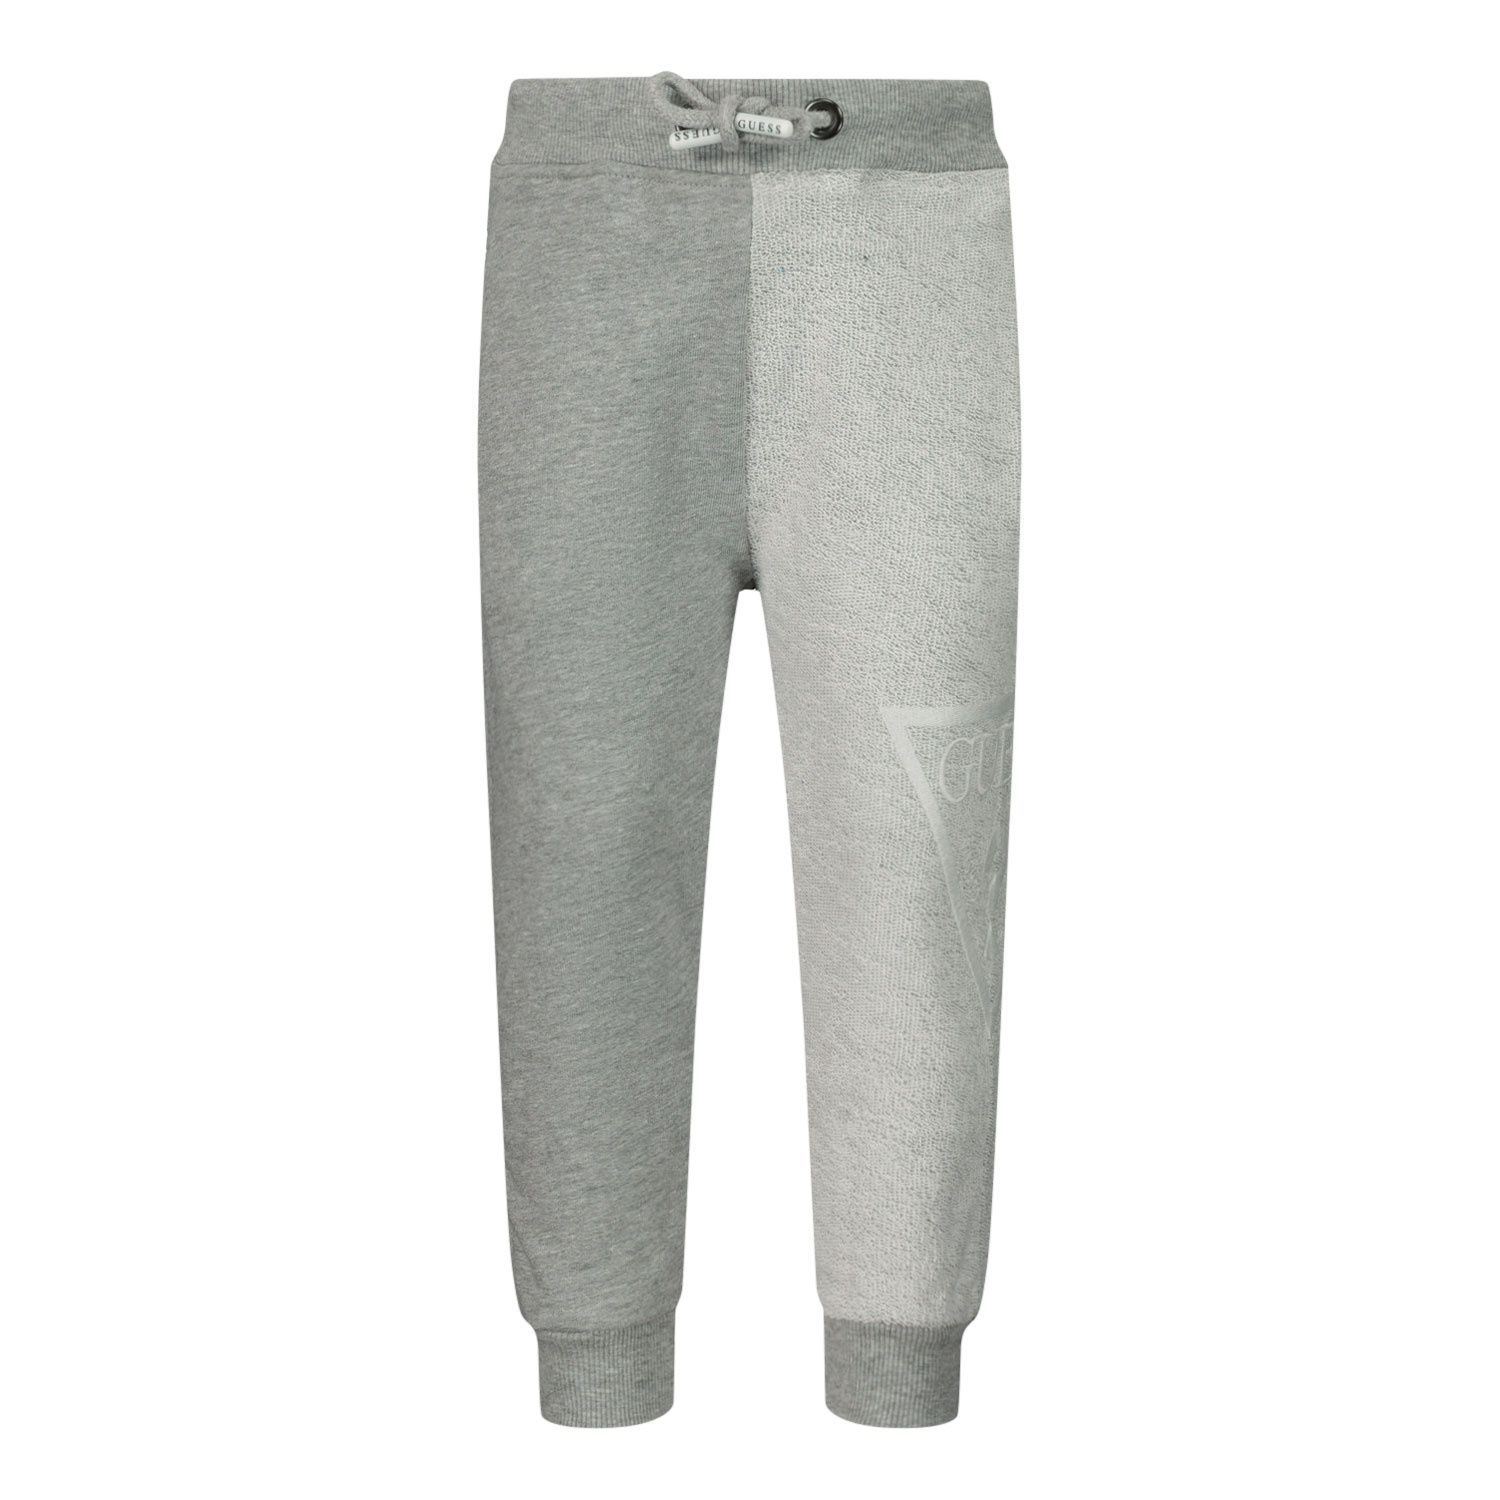 Picture of Guess N1RQ09 baby pants light gray